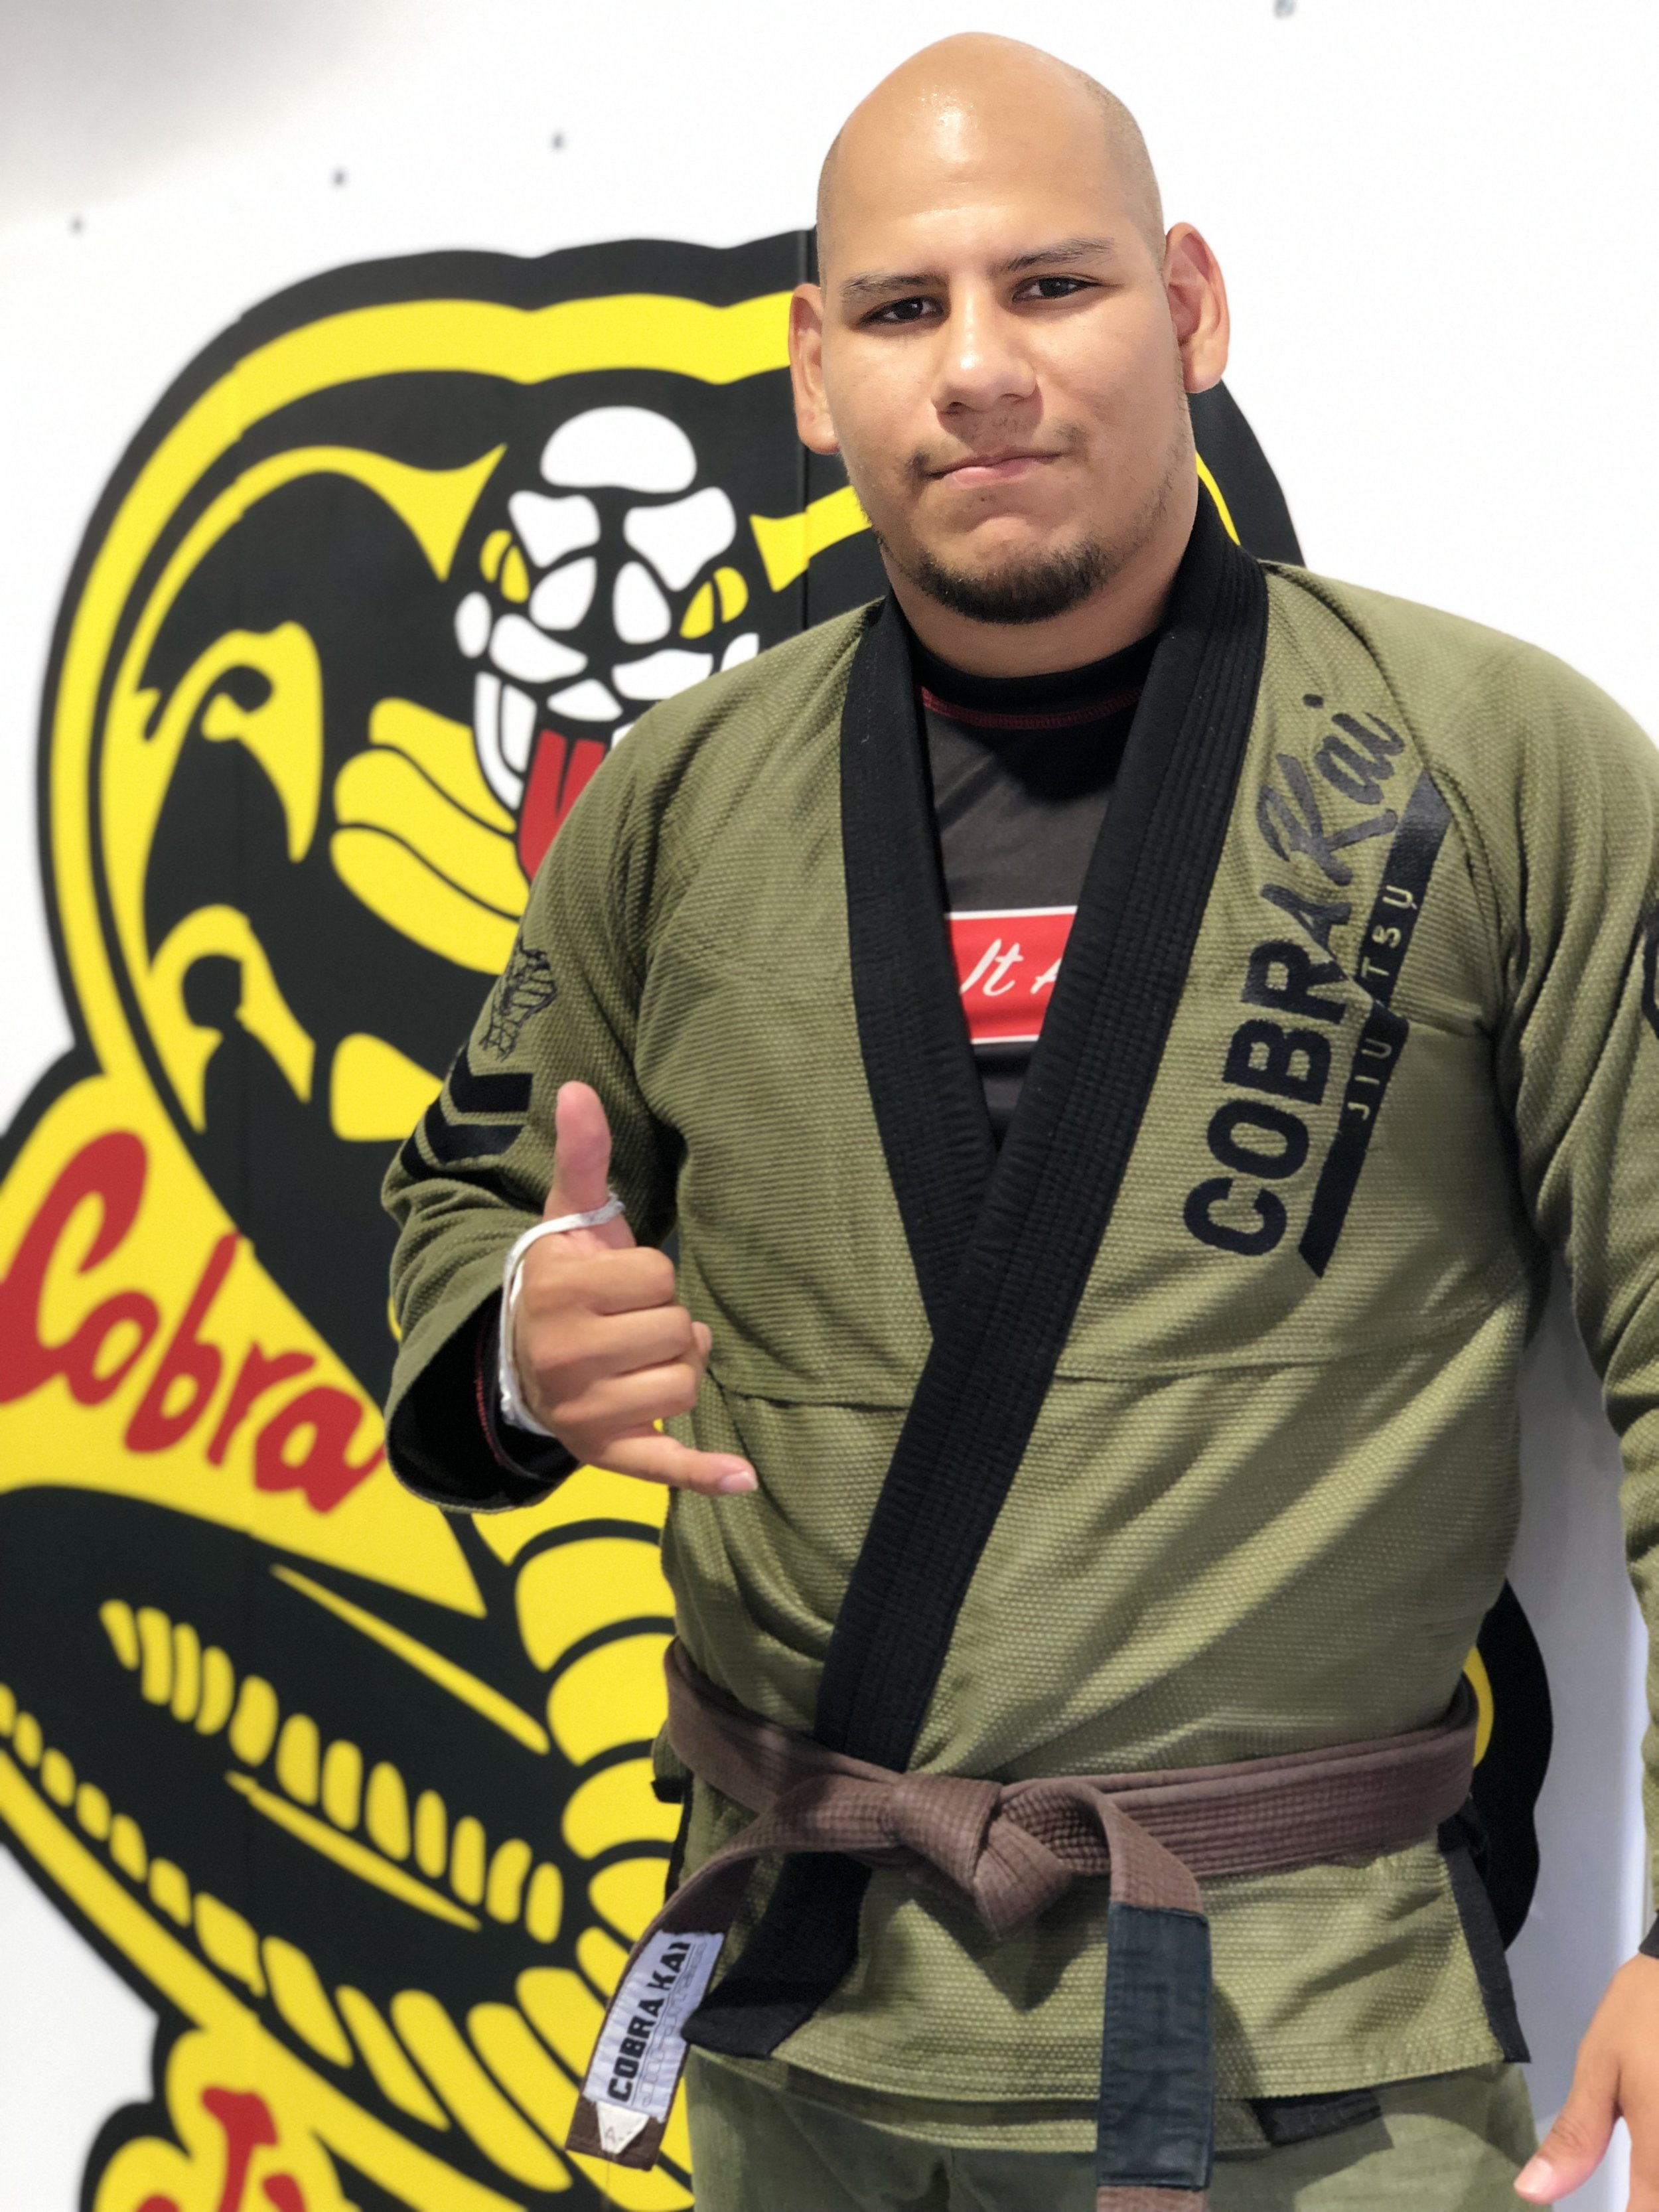 Kevin Mendoza   Brown Bel t Five Grappling Gi & No Gi Champion Army Combative Certified 4th Place Nevada State Wrestling Tournament